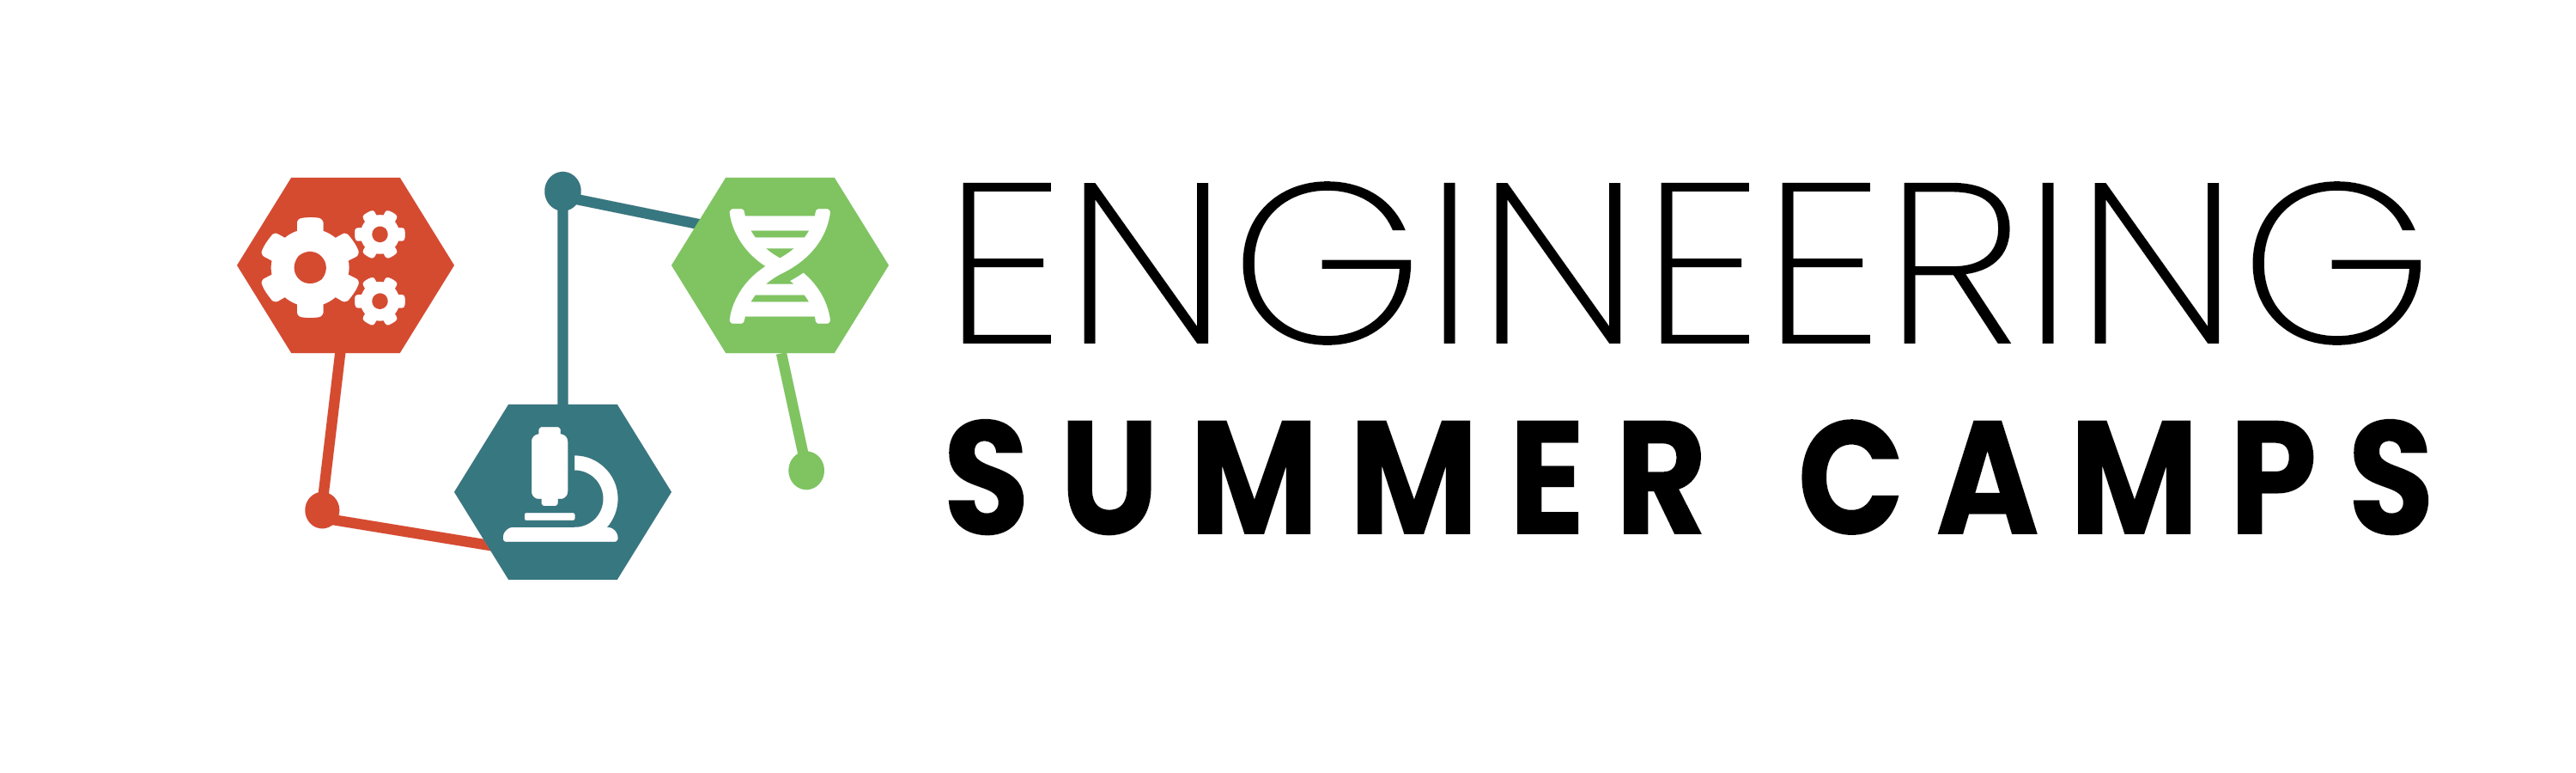 Engineering Summer Camps